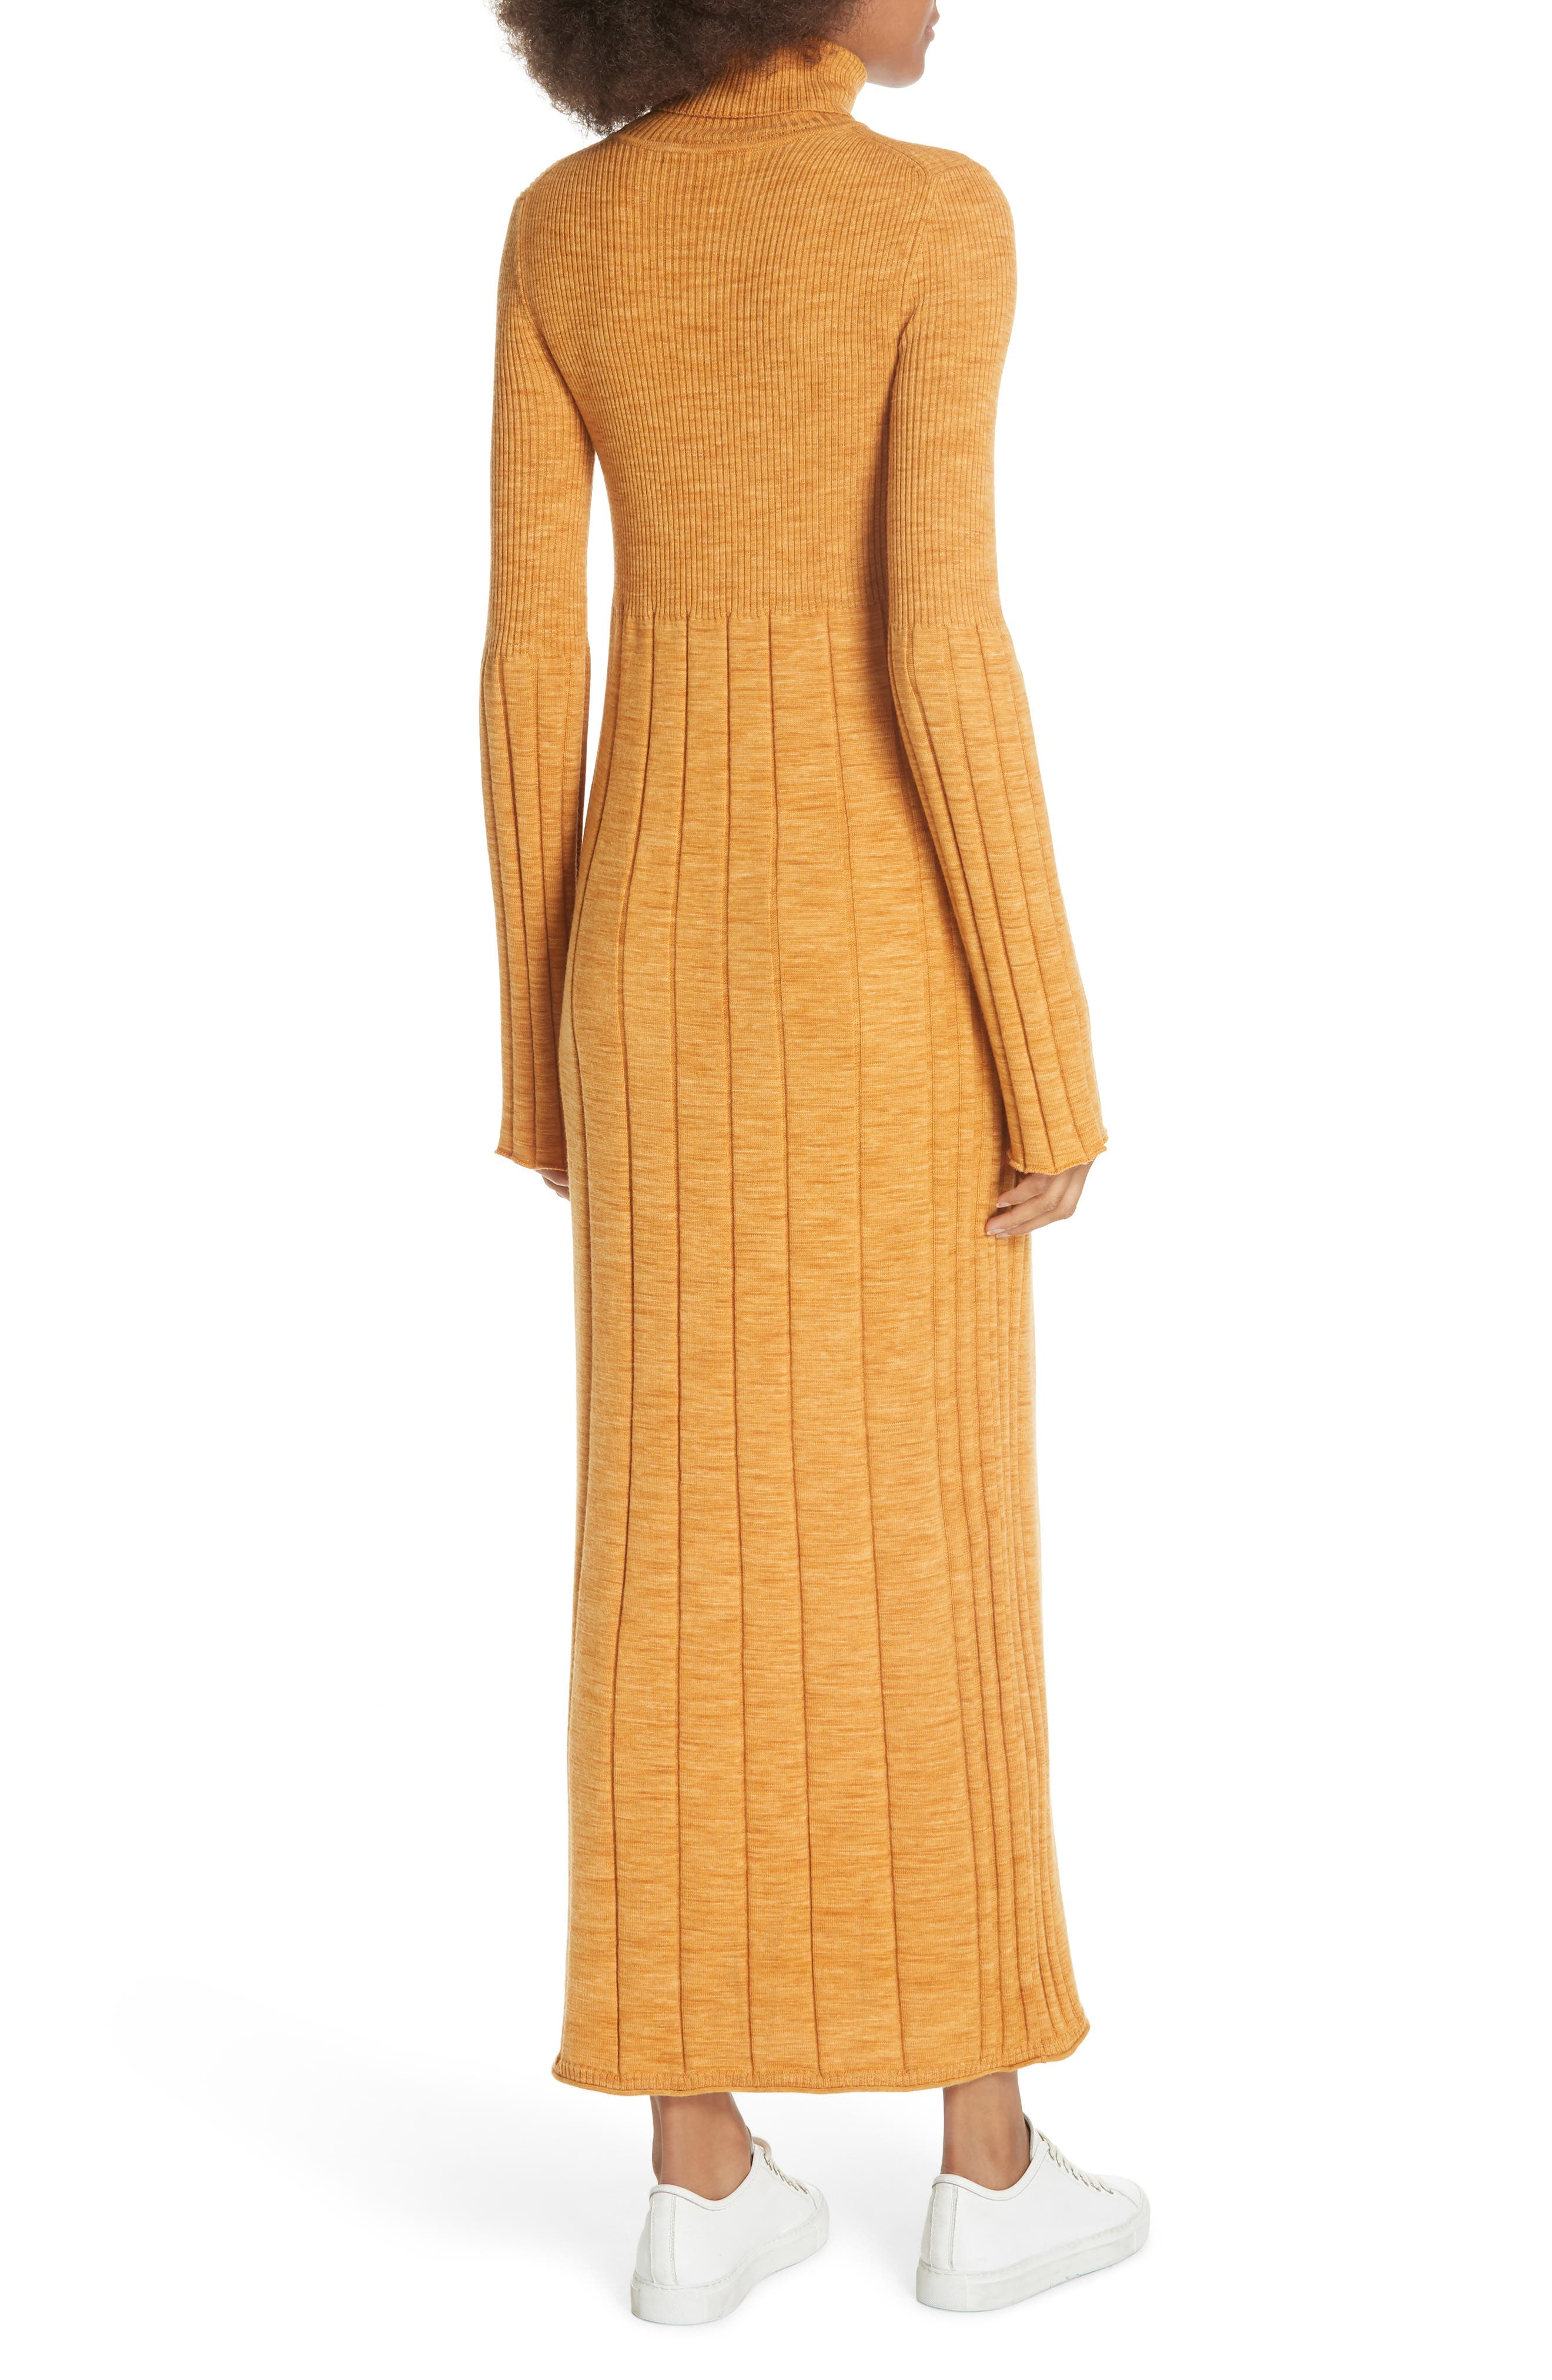 Clementine Ribbed Space Dye Wool Dress,                             Alternate thumbnail 2, color,                             700